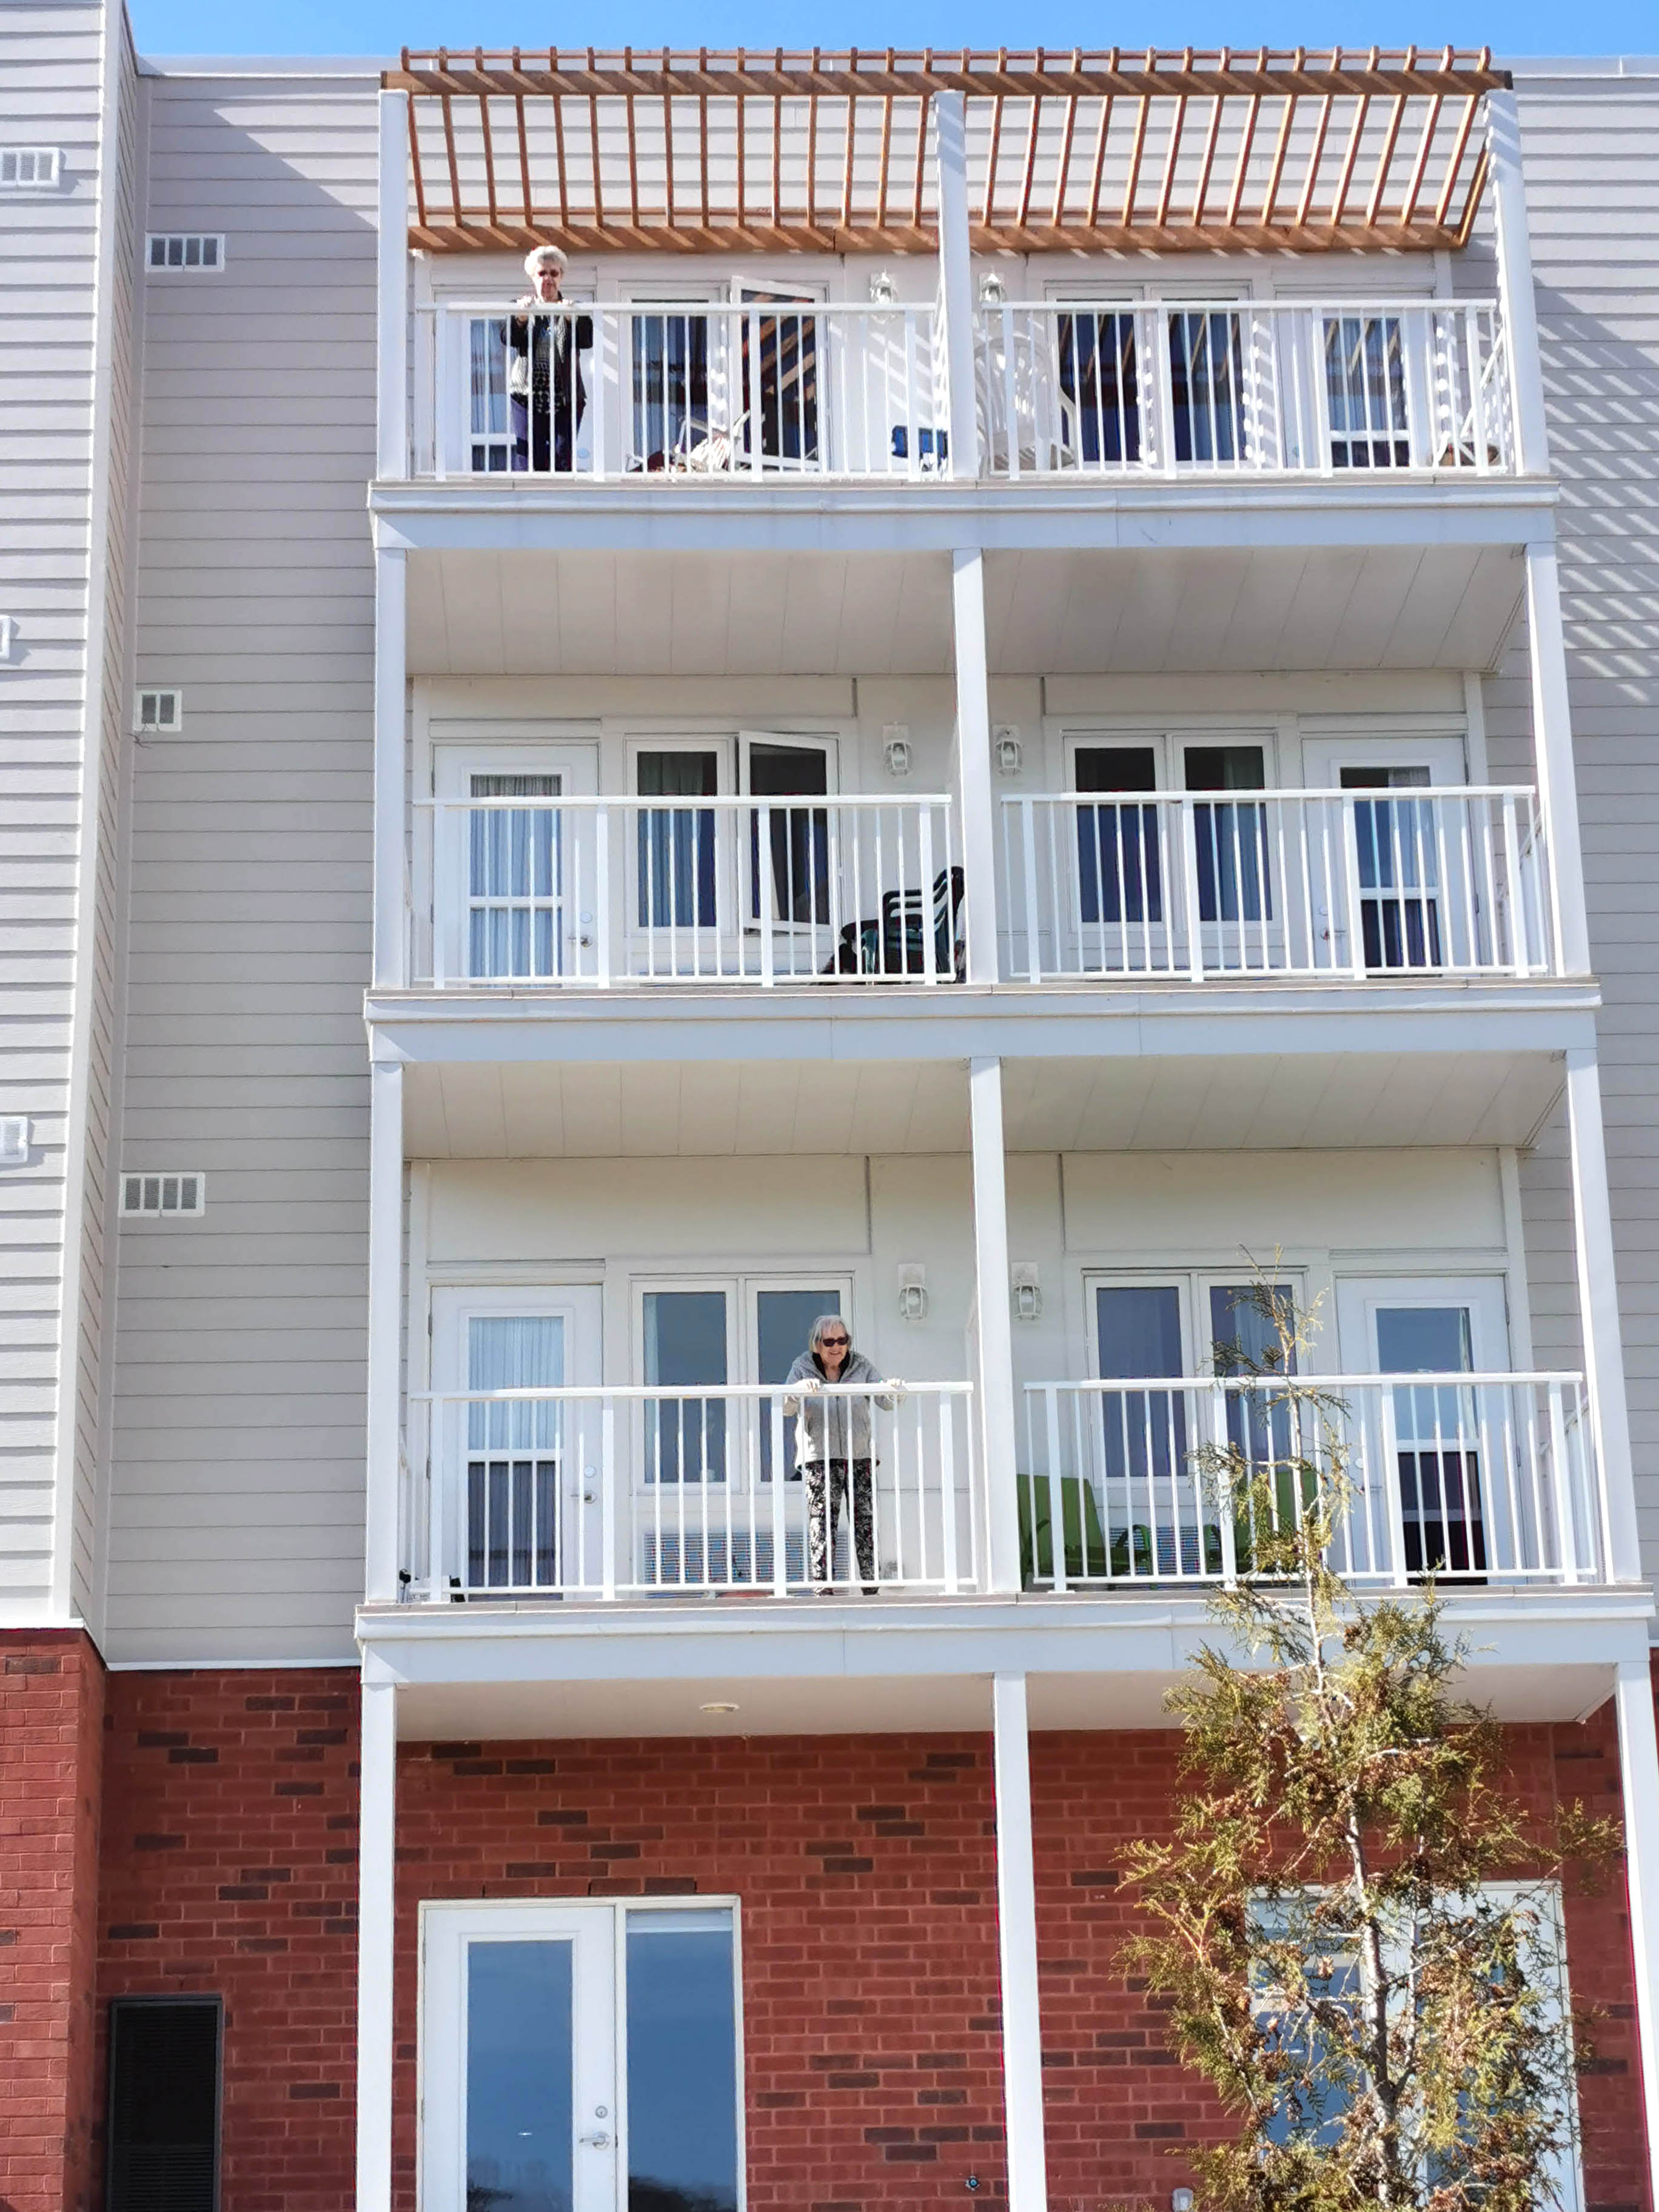 Residents on their balconies enjoying the warm weather.